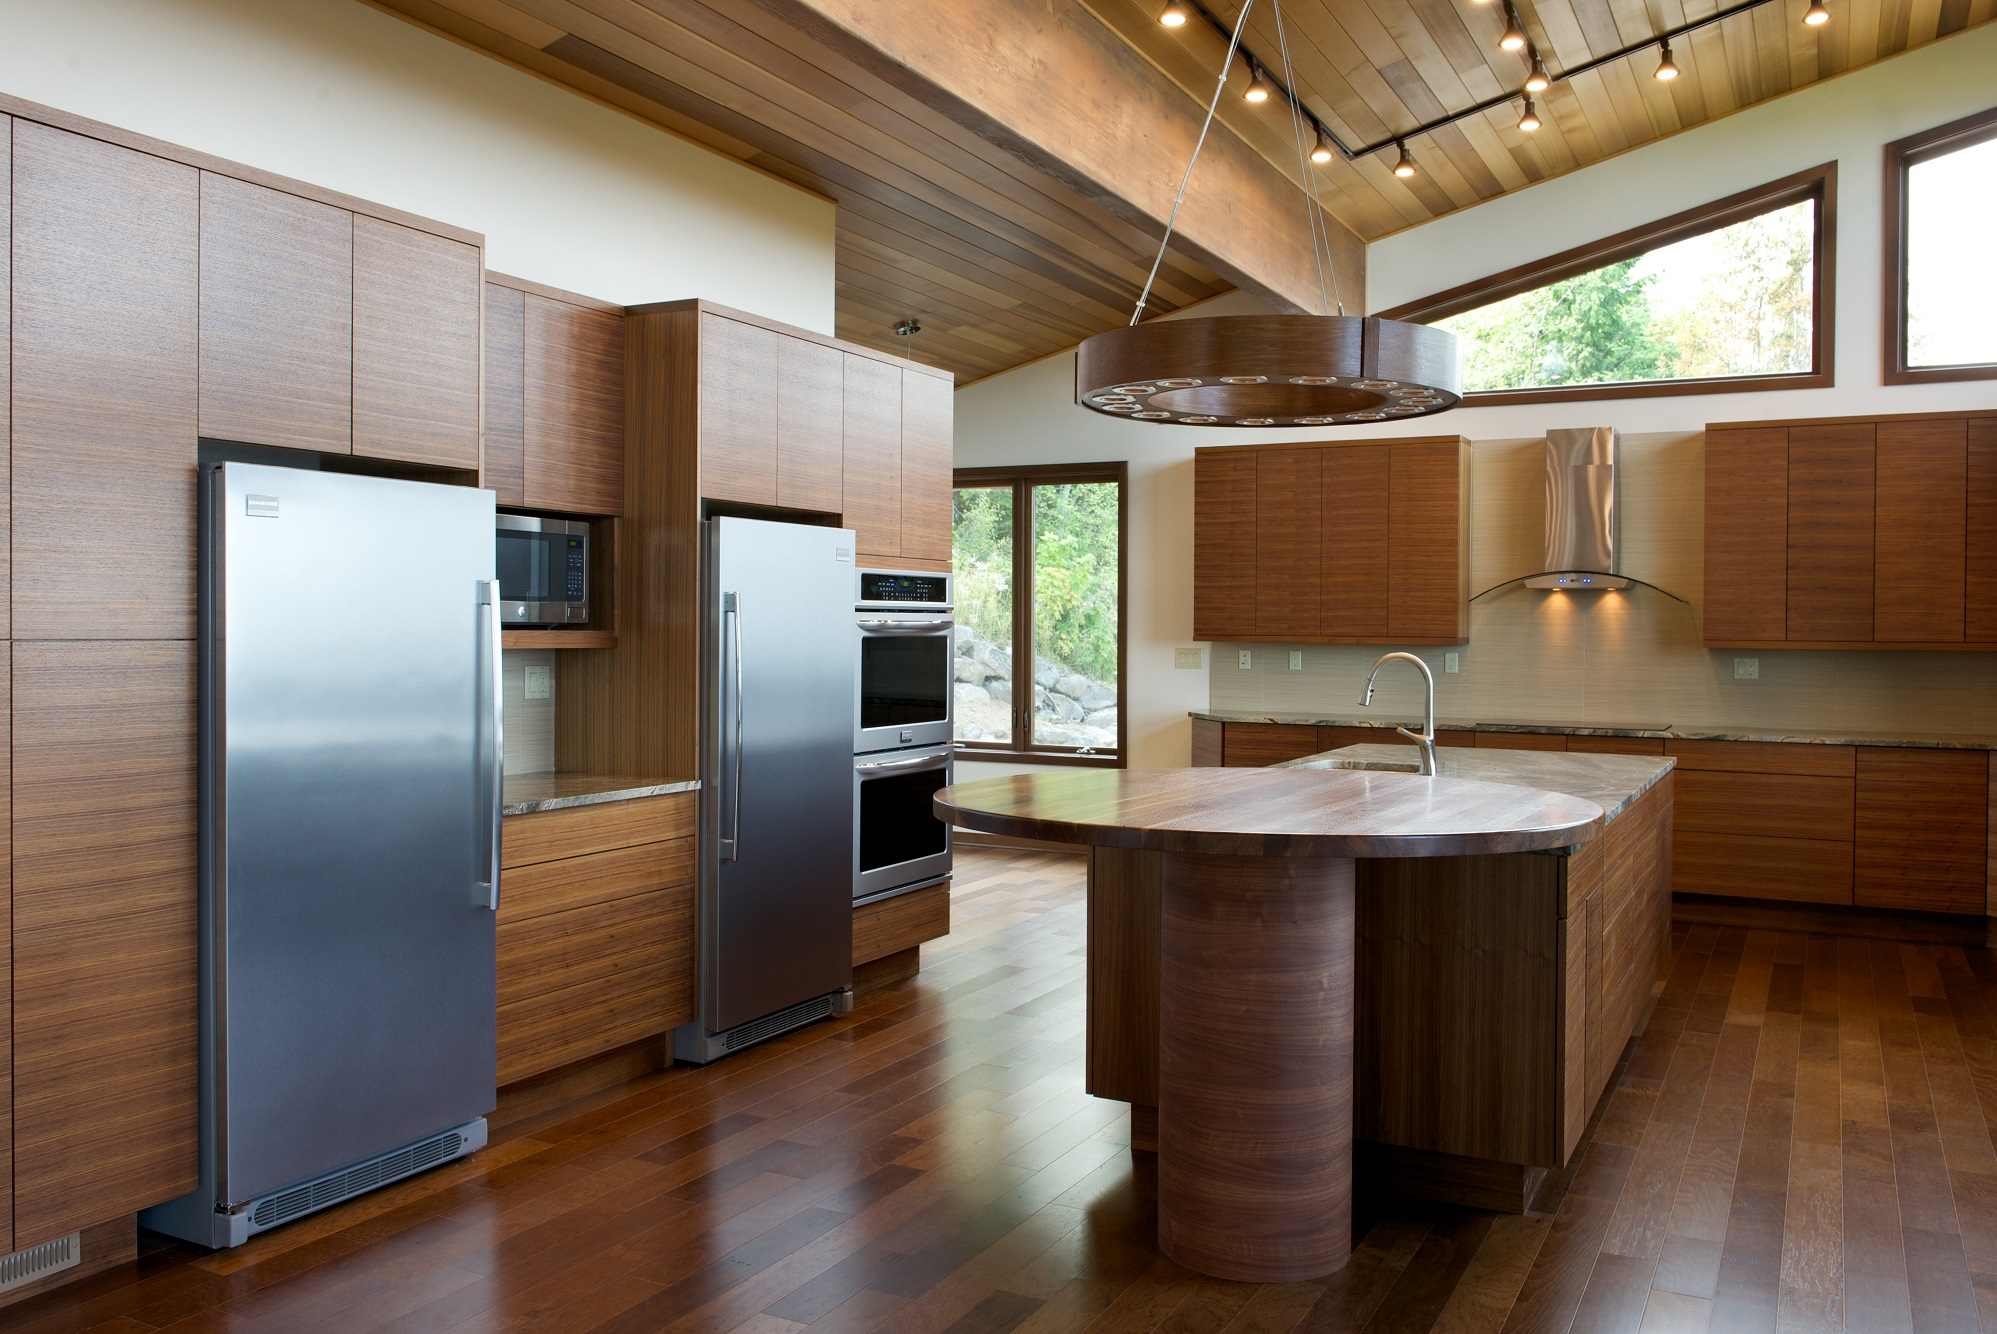 In the kitchen trapezoidal clerestory windows and flush panel